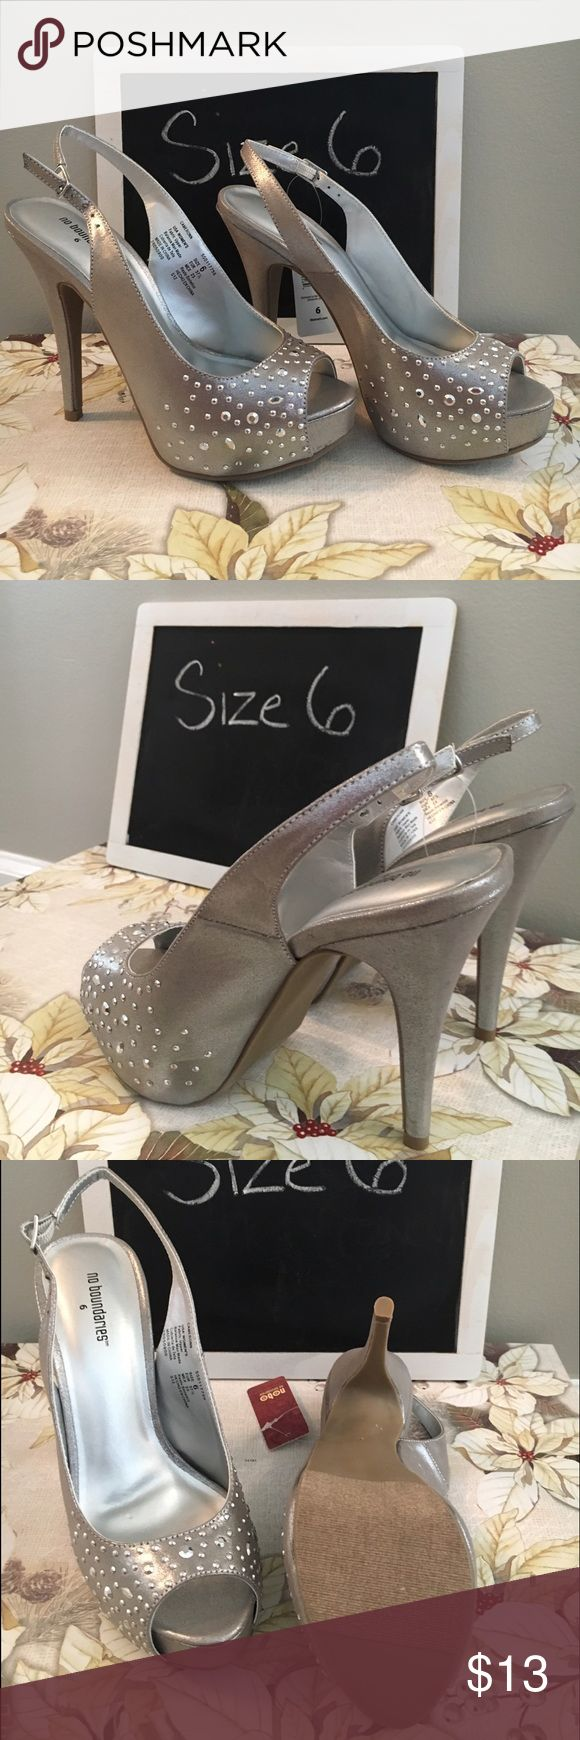 Women's size 6 Silver pumps with high heels Super sexy women's size 6 silver high-heels with small rhinestones and a strap on the back that is adjustable. No Boundaries Shoes Heels